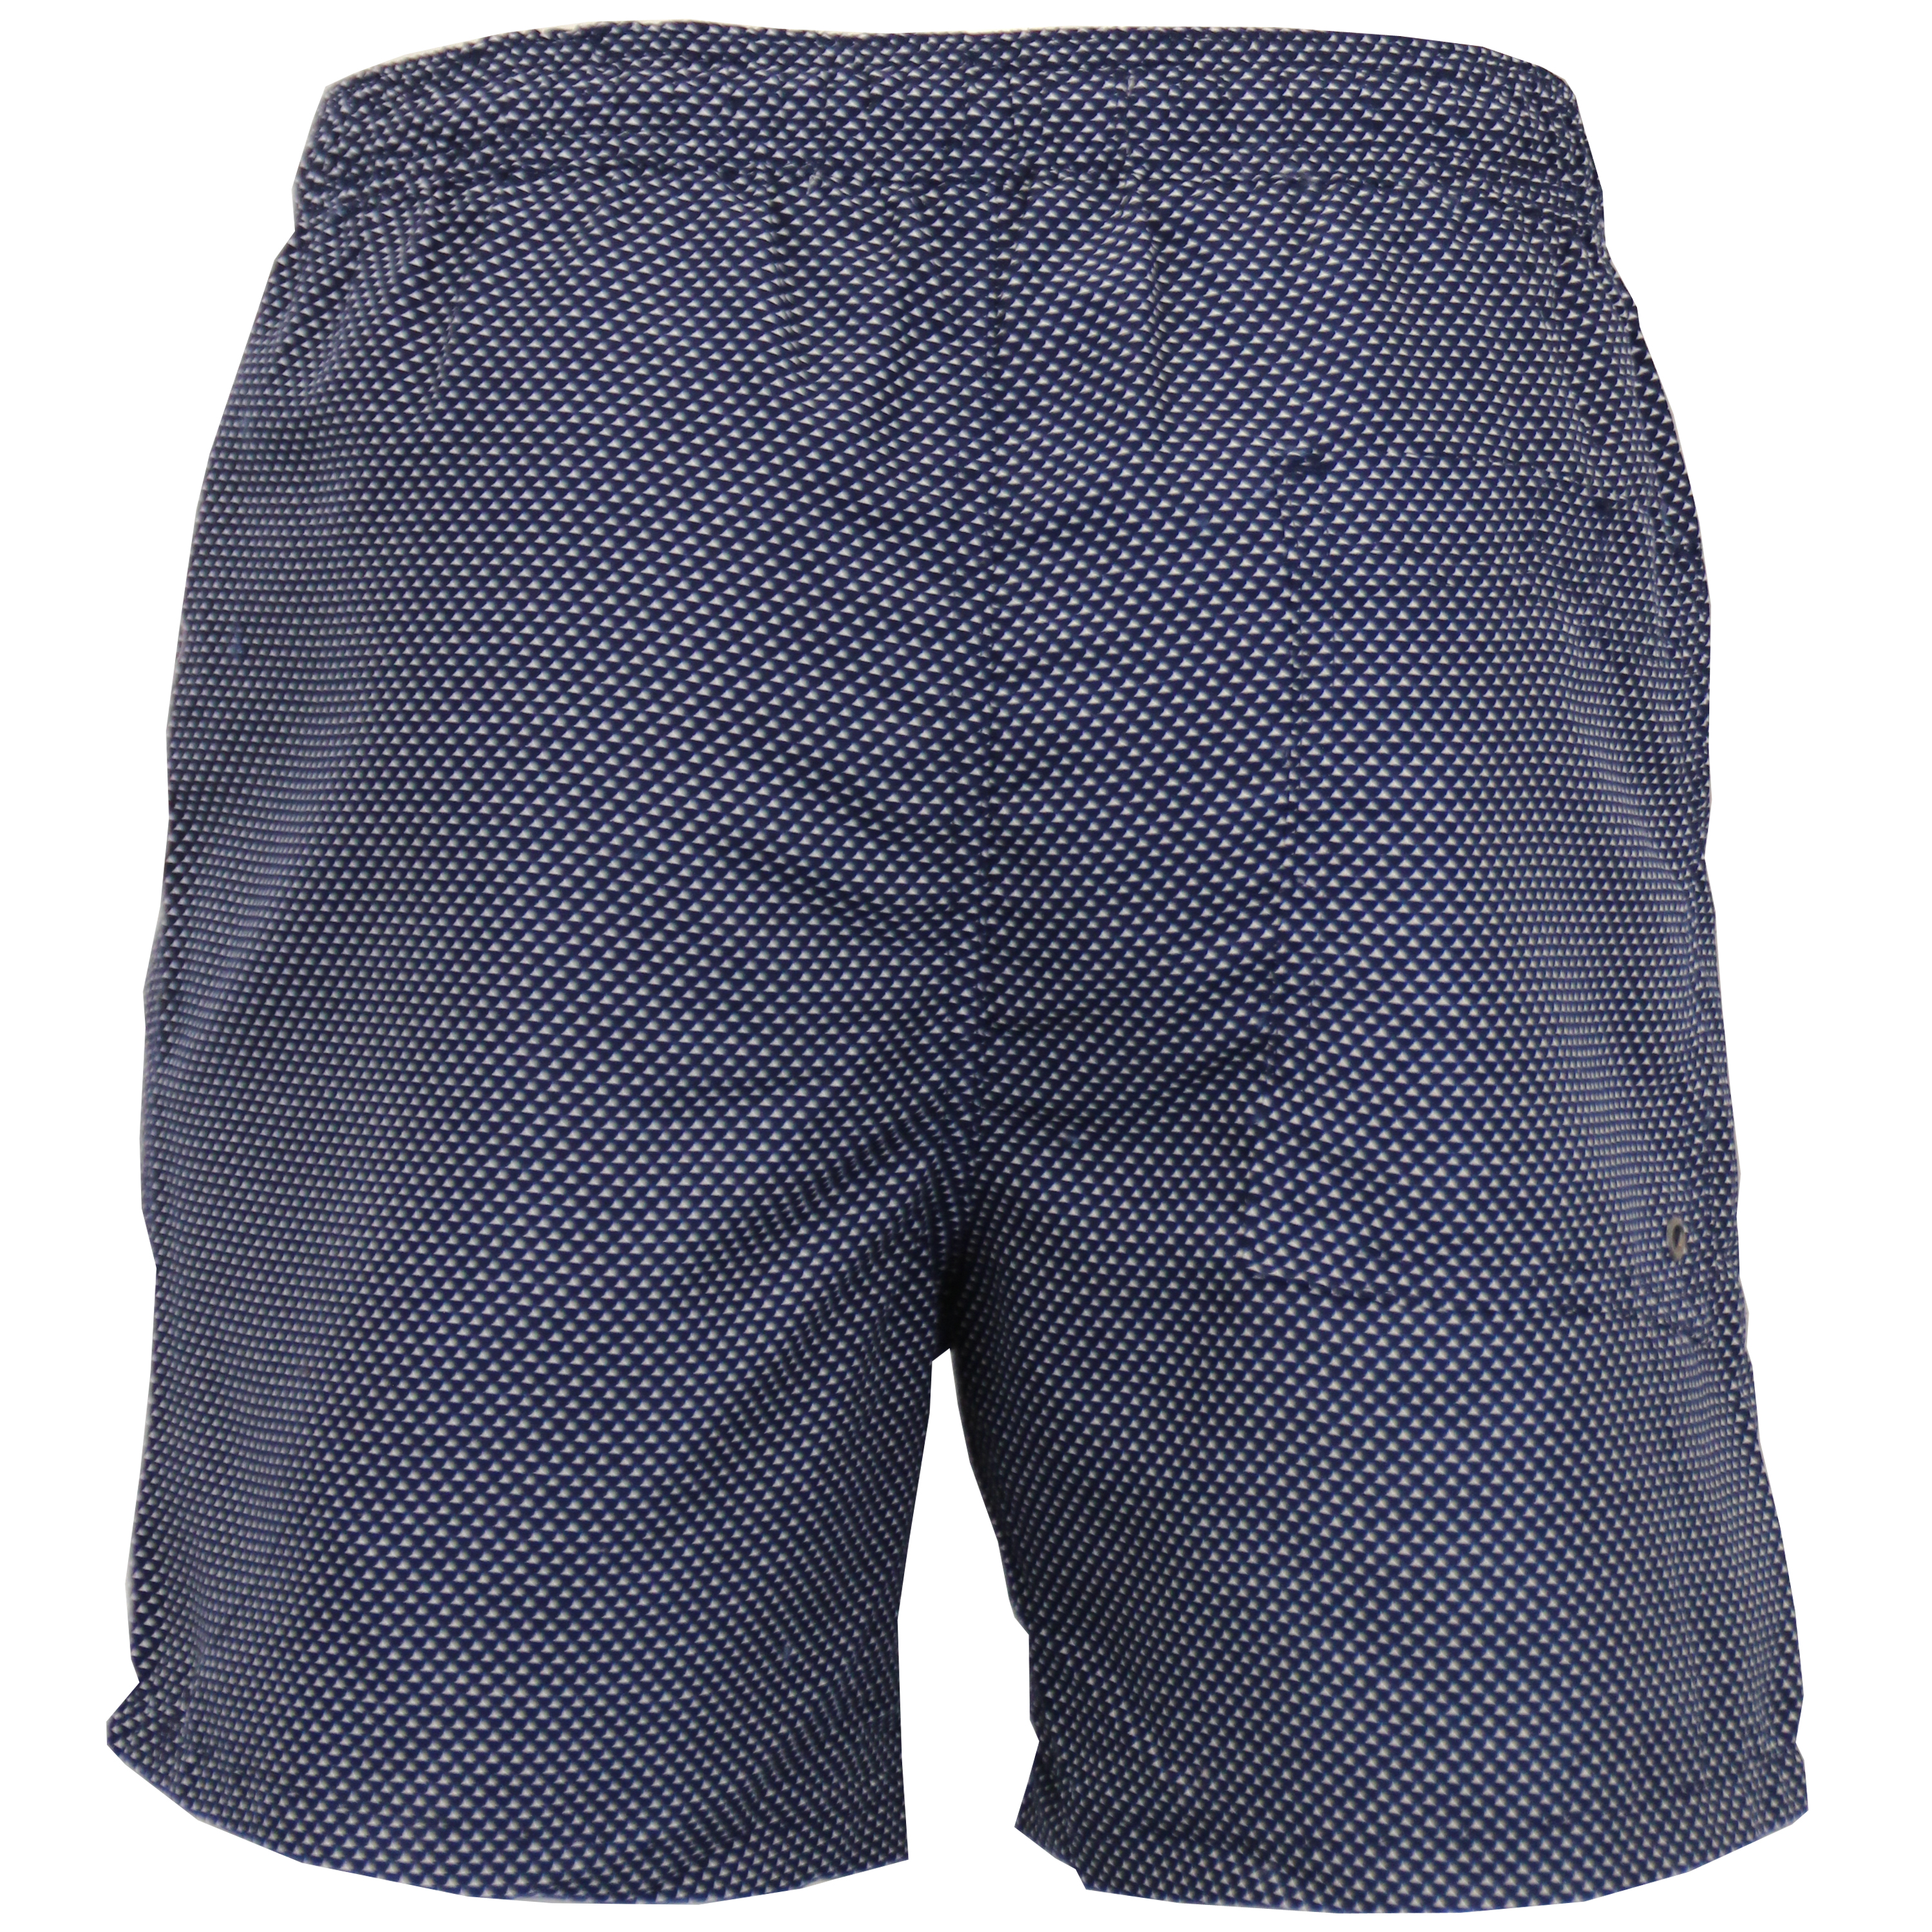 Mens-Swimming-Shorts-Brave-Soul-Camo-Military-Trunks-Mesh-Lined-Beach-Summer-New thumbnail 12